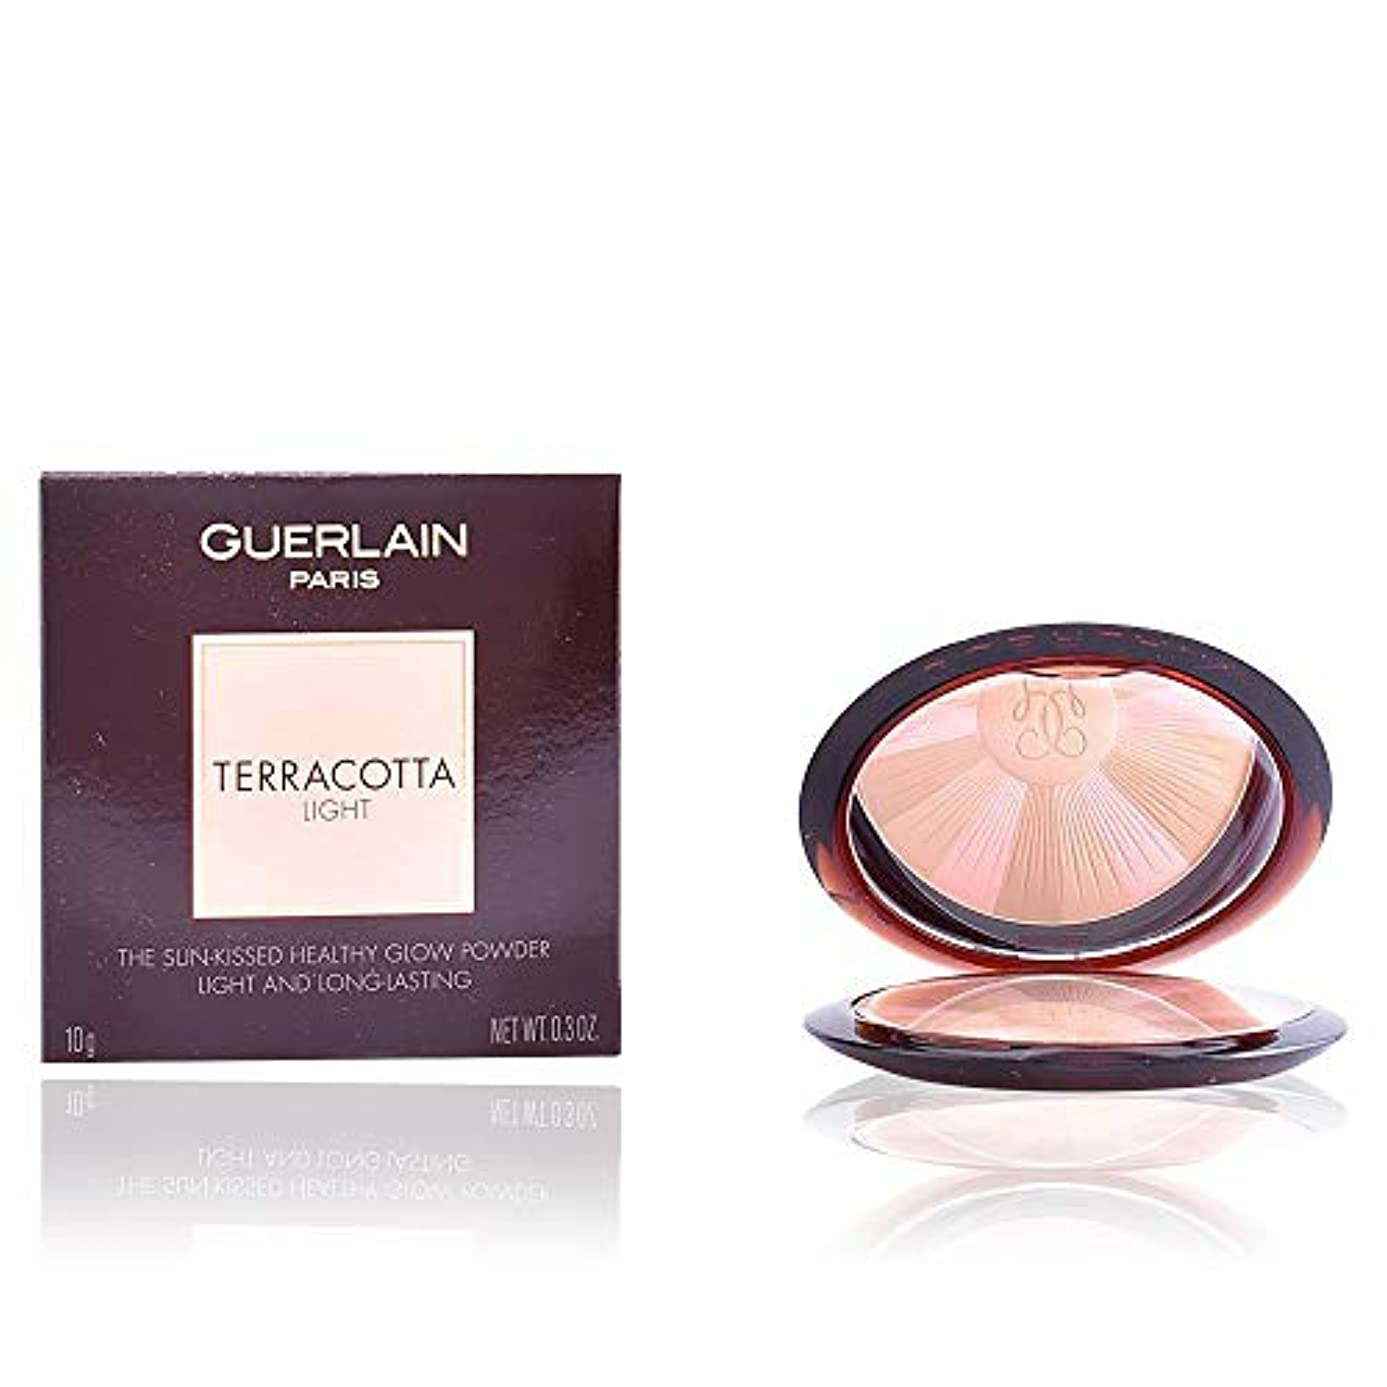 どうしたのスープ続けるゲラン Terracotta Light The Sun Kissed Healthy Glow Powder - # 03 Natural Warm 10g/0.3oz並行輸入品